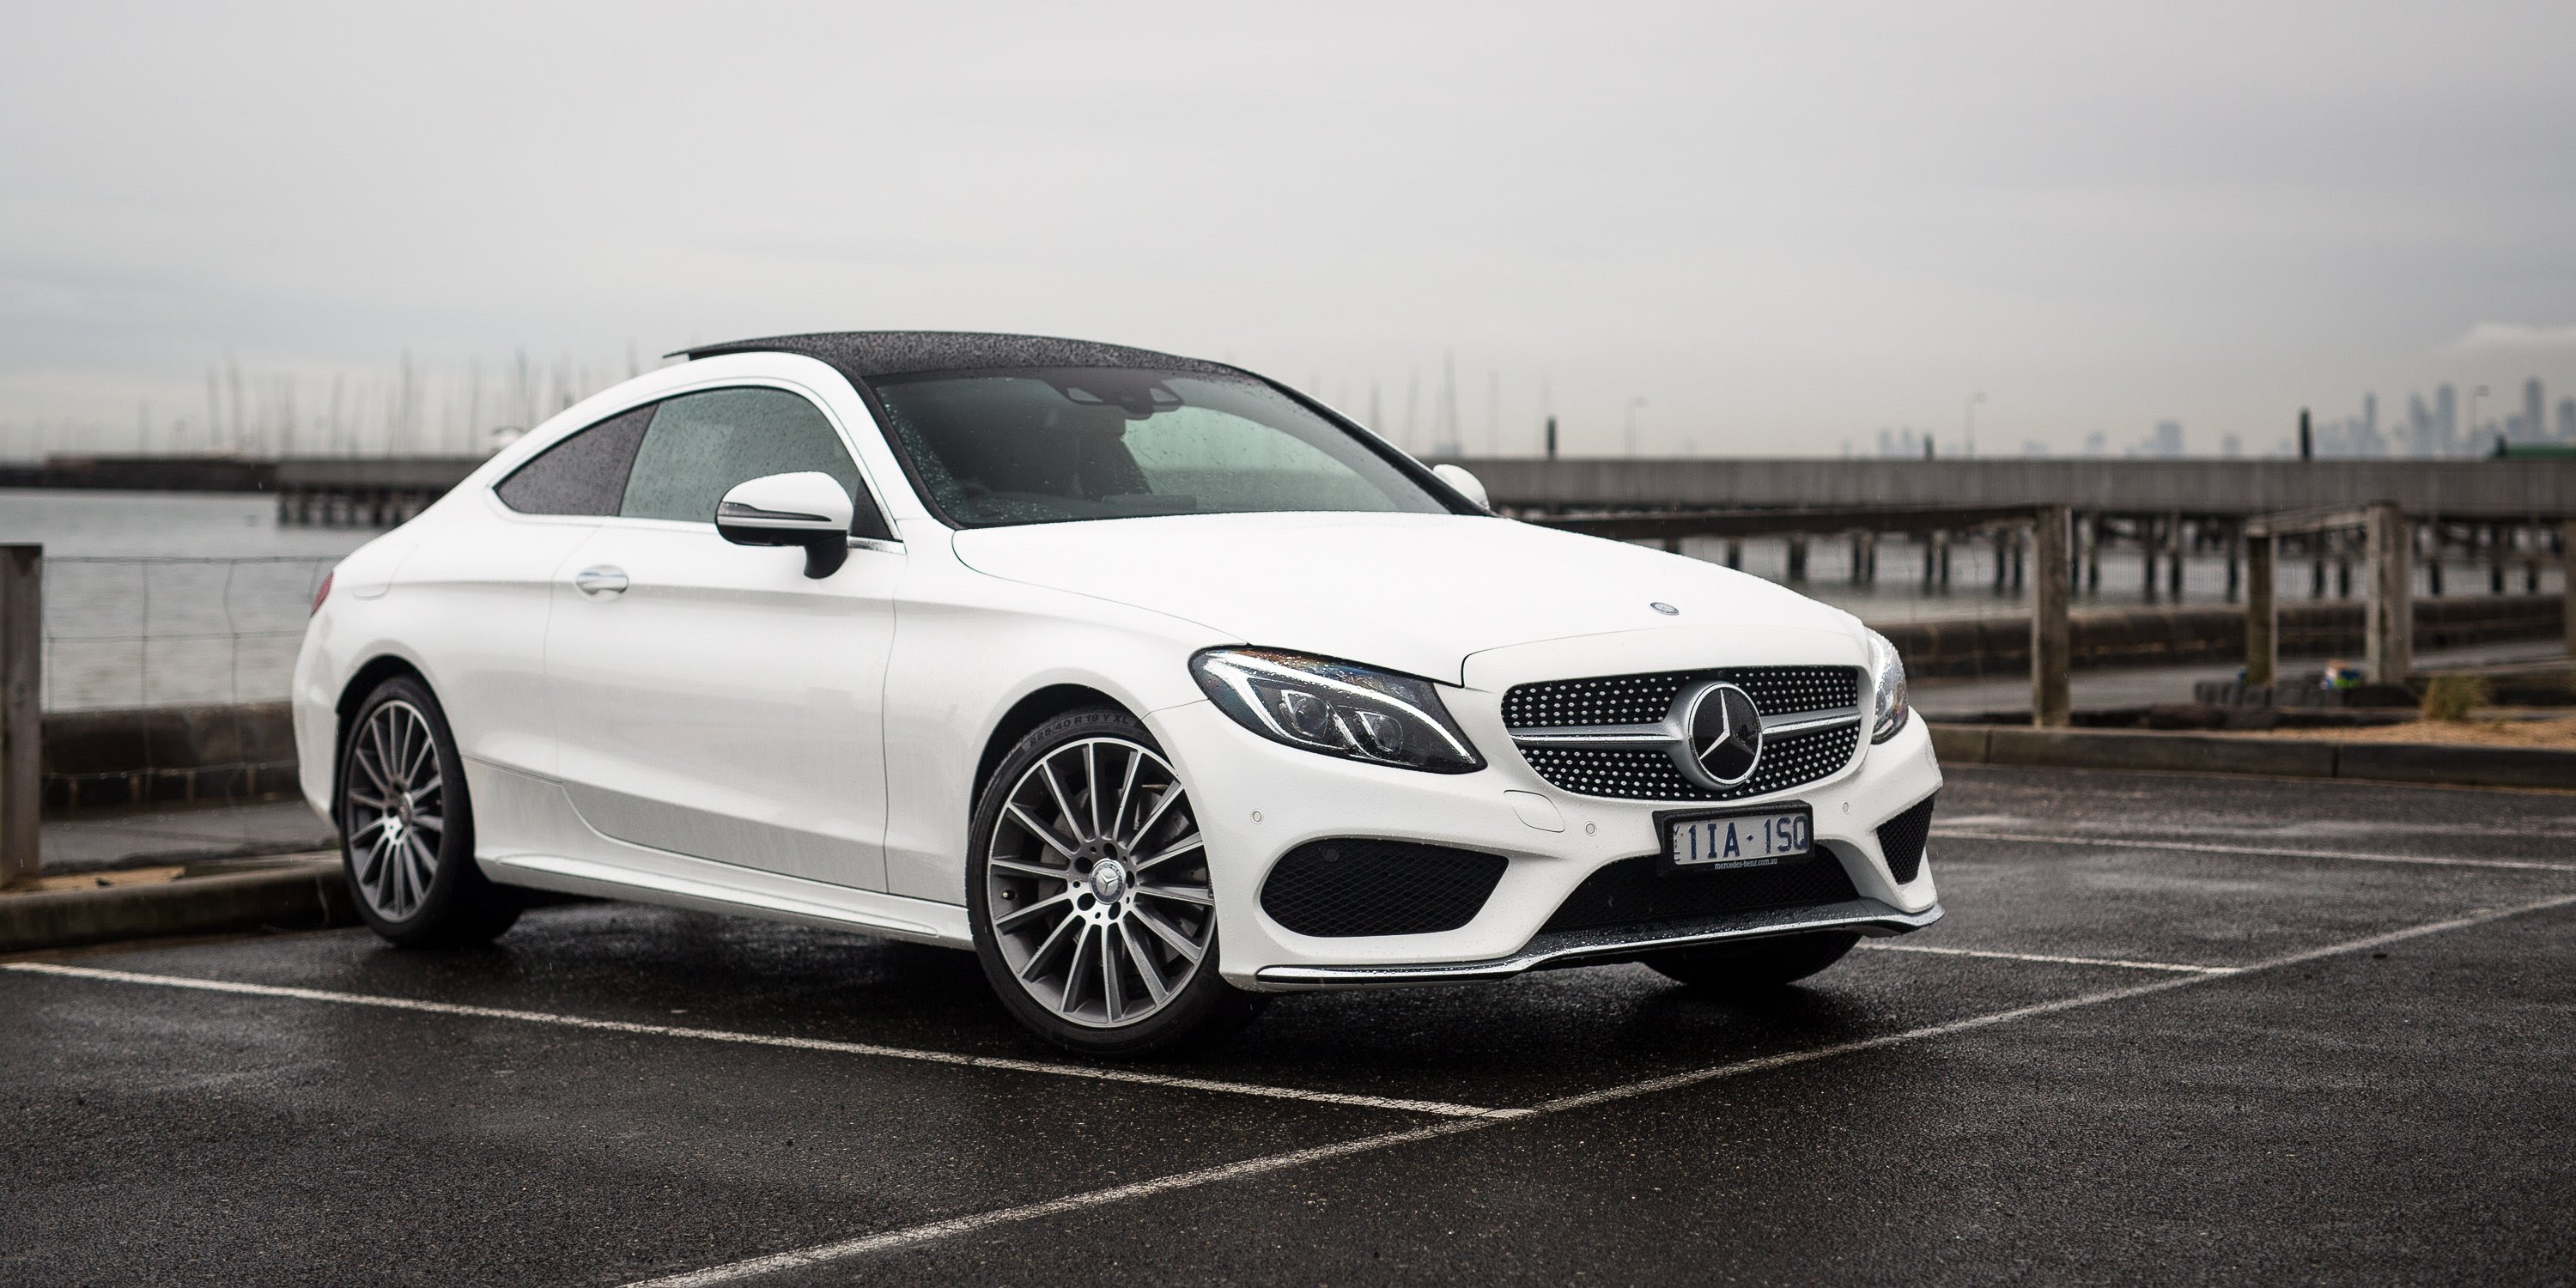 2016 Mercedes-Benz C300 Coupe review: Long-term report ...